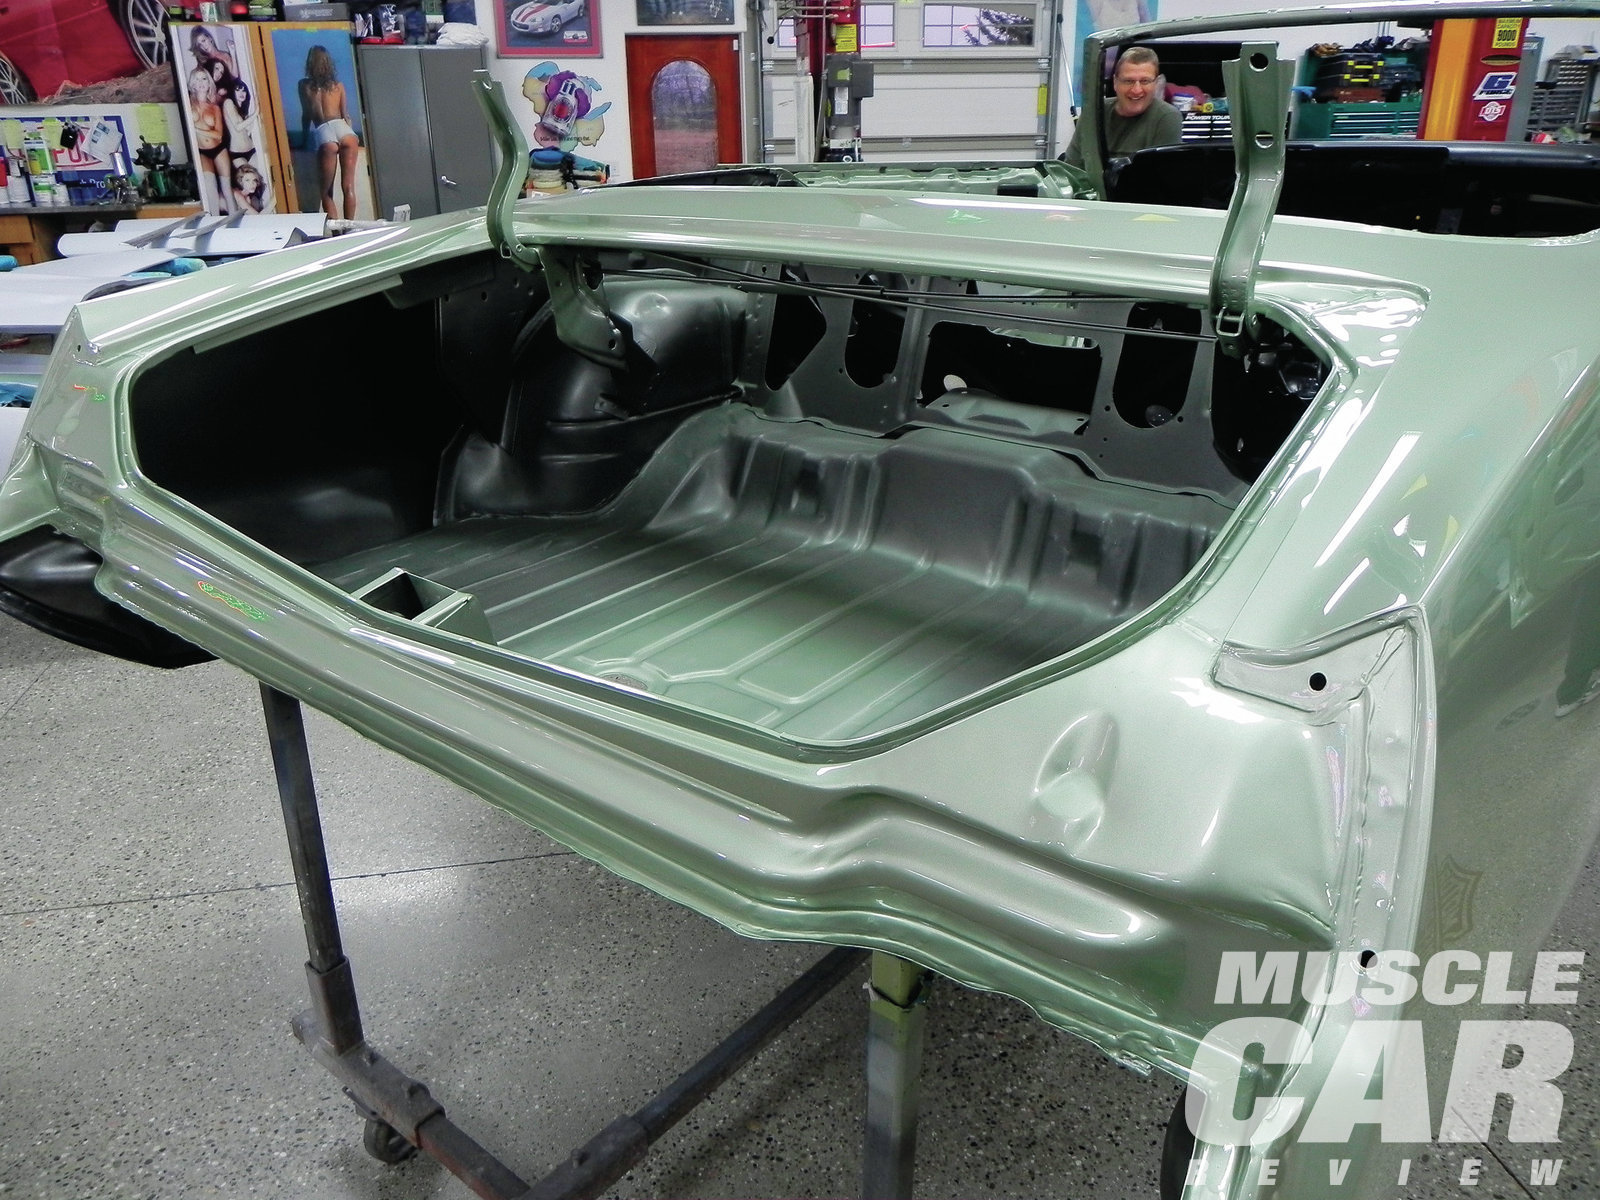 The trunk area is masked off and painted black first, then the body is masked and the overspray is lightly applied. The drain plugs do not get painted and are installed after all painting is complete but before adding the trunk splatter paint.